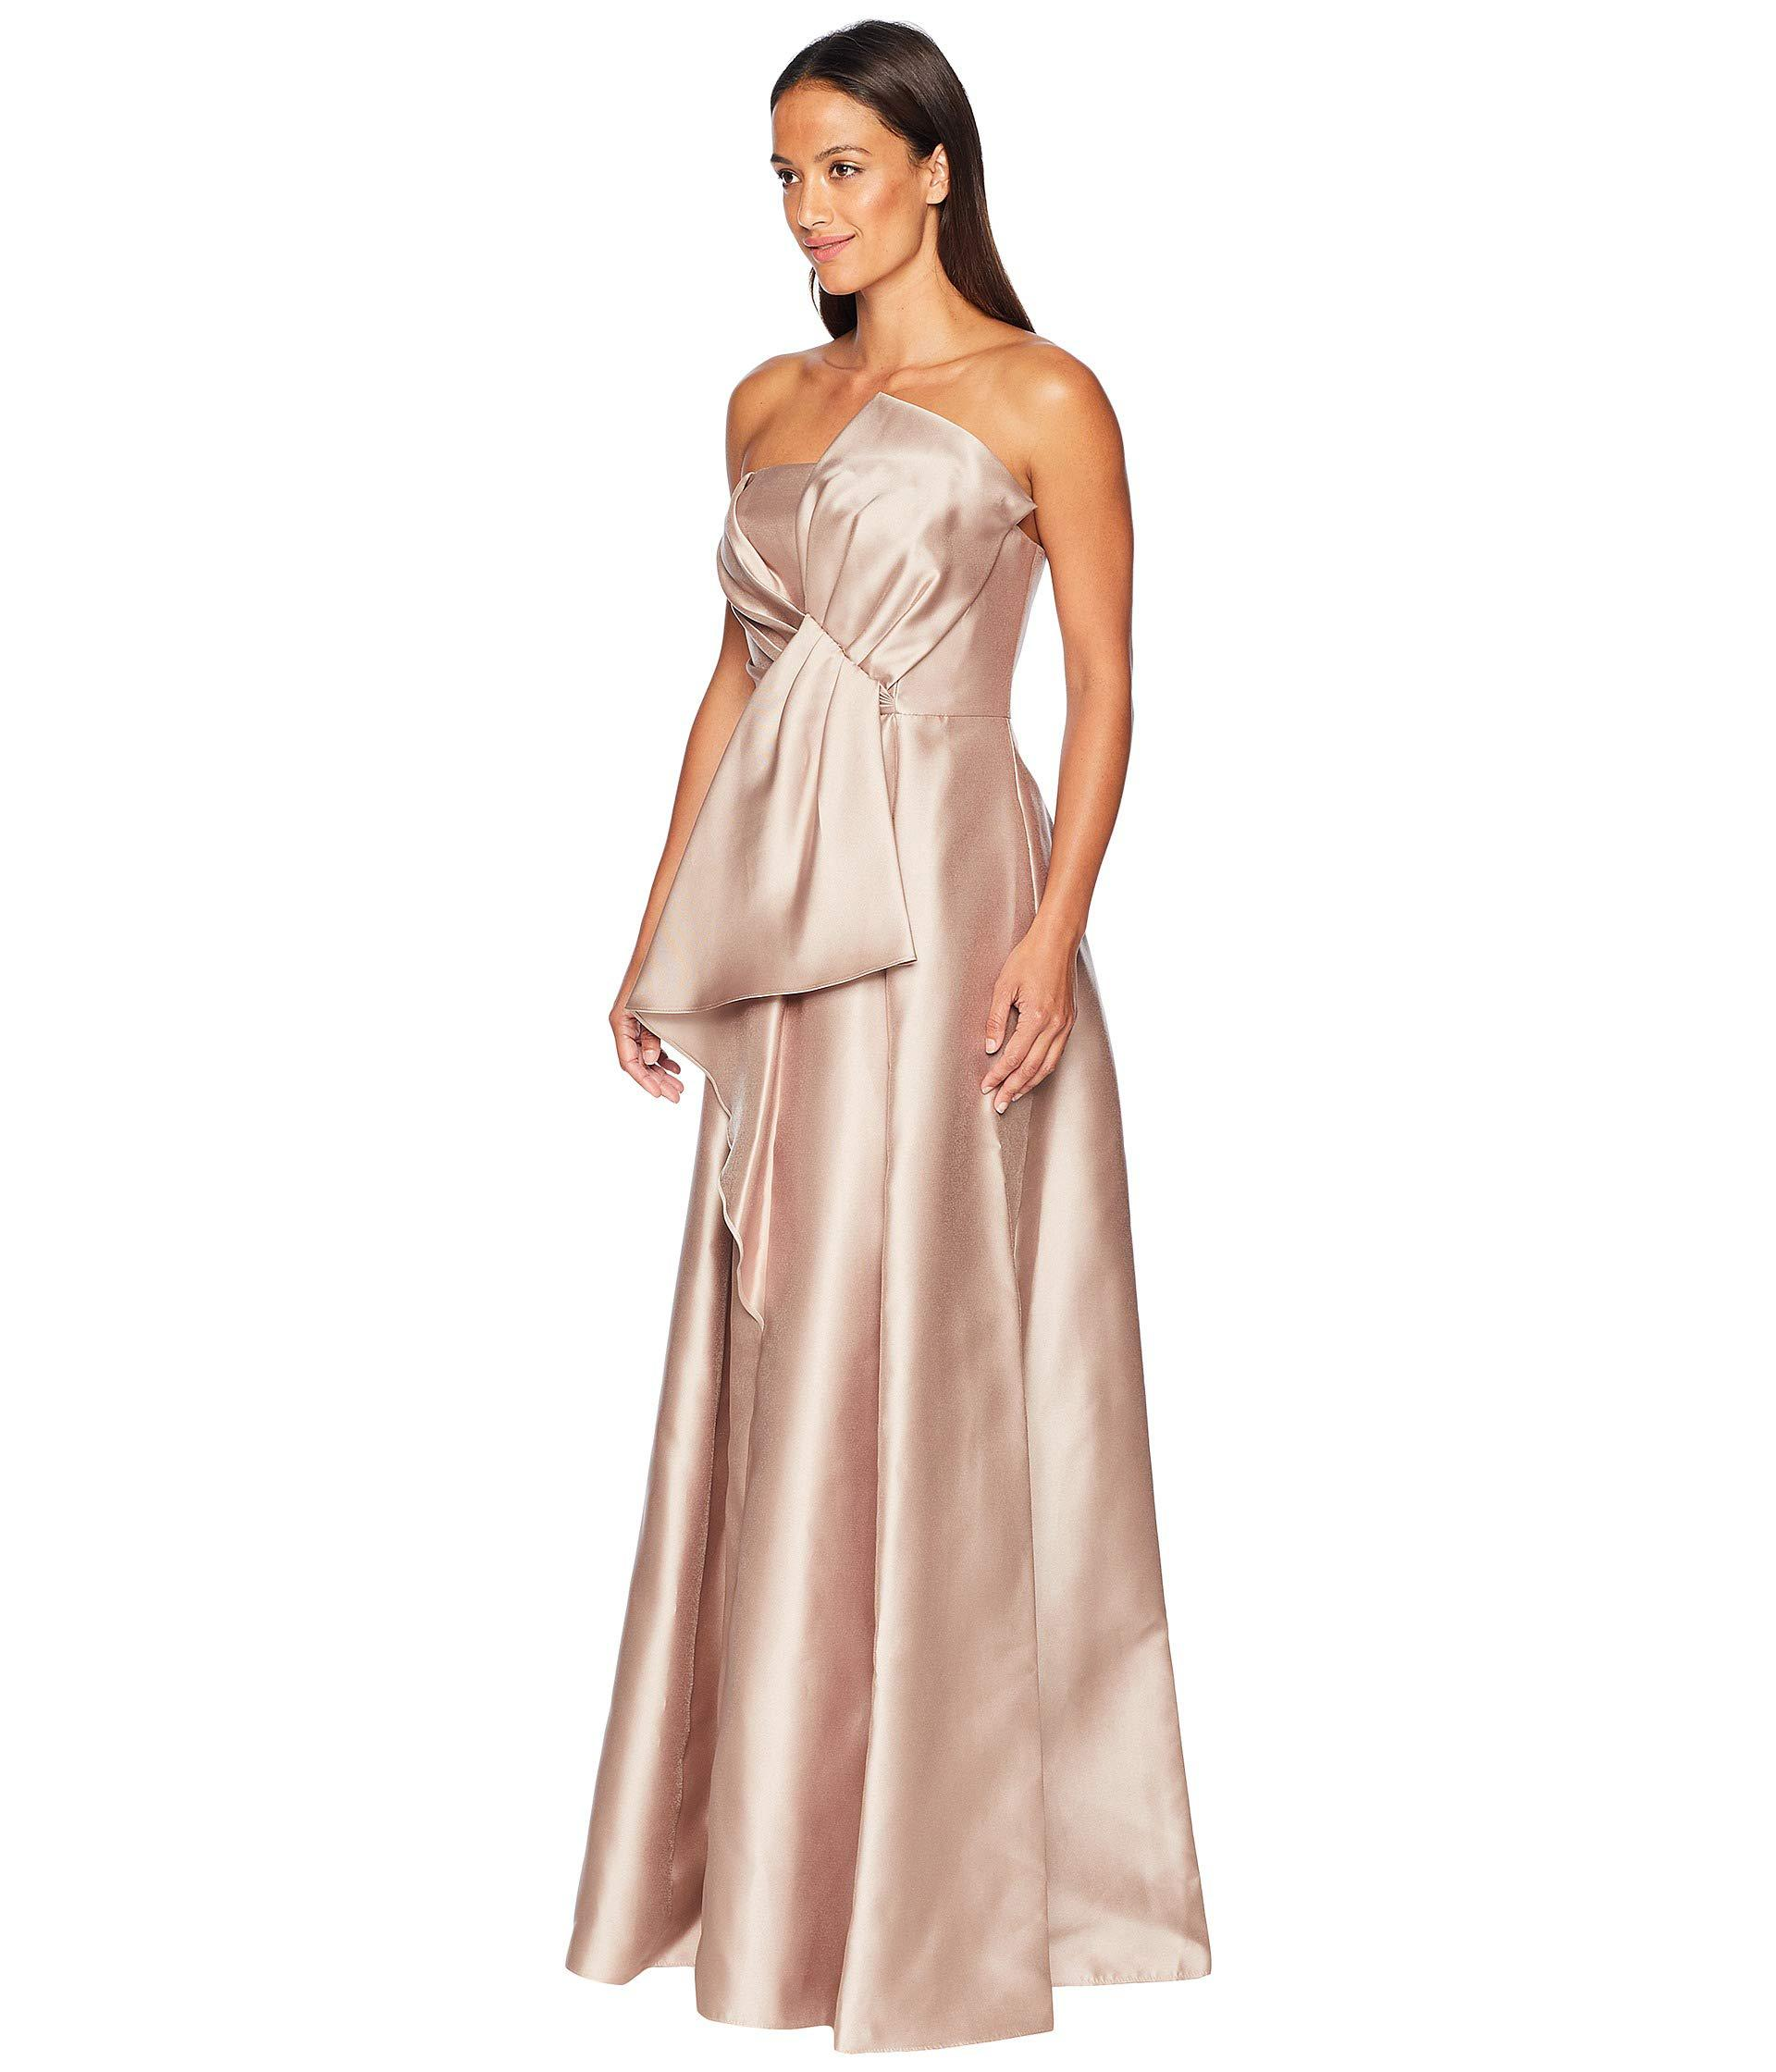 c3c45ccccda9 Lyst - Adrianna Papell Strapless Mikado Ball Gown With Bow Accent Dress in  Pink - Save 14%